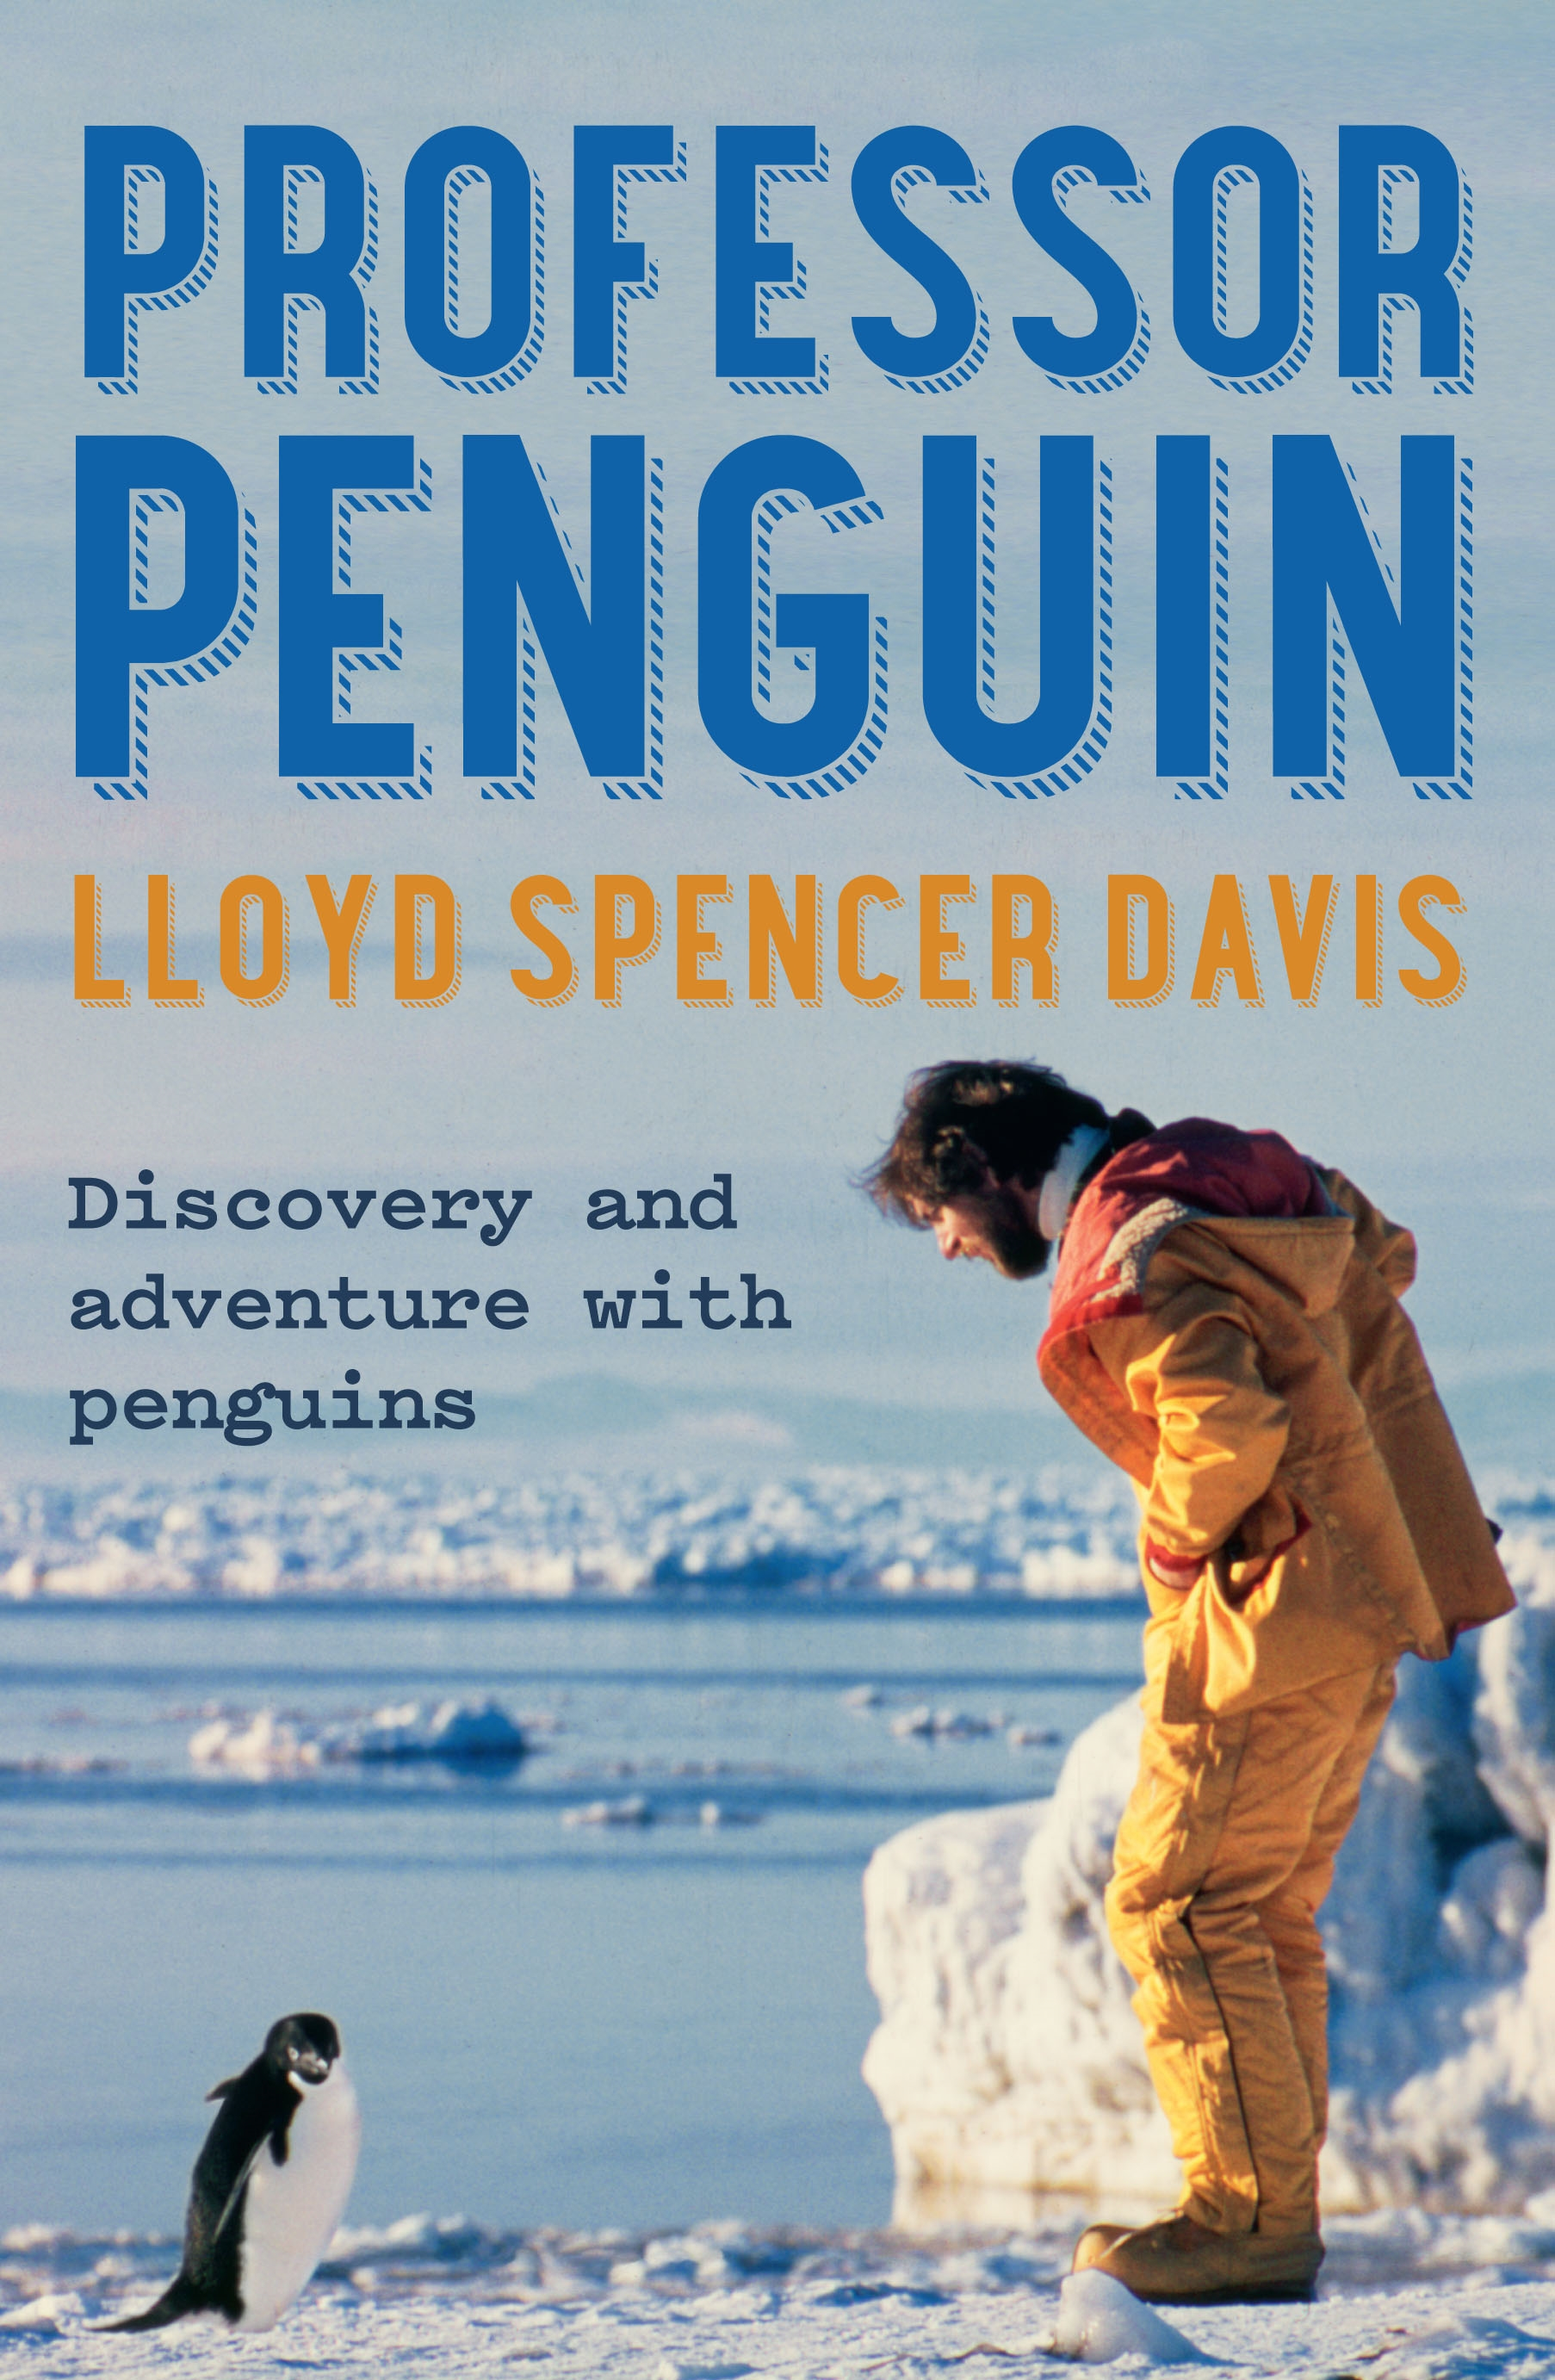 Professor Penguin Notes From a Life in the Field